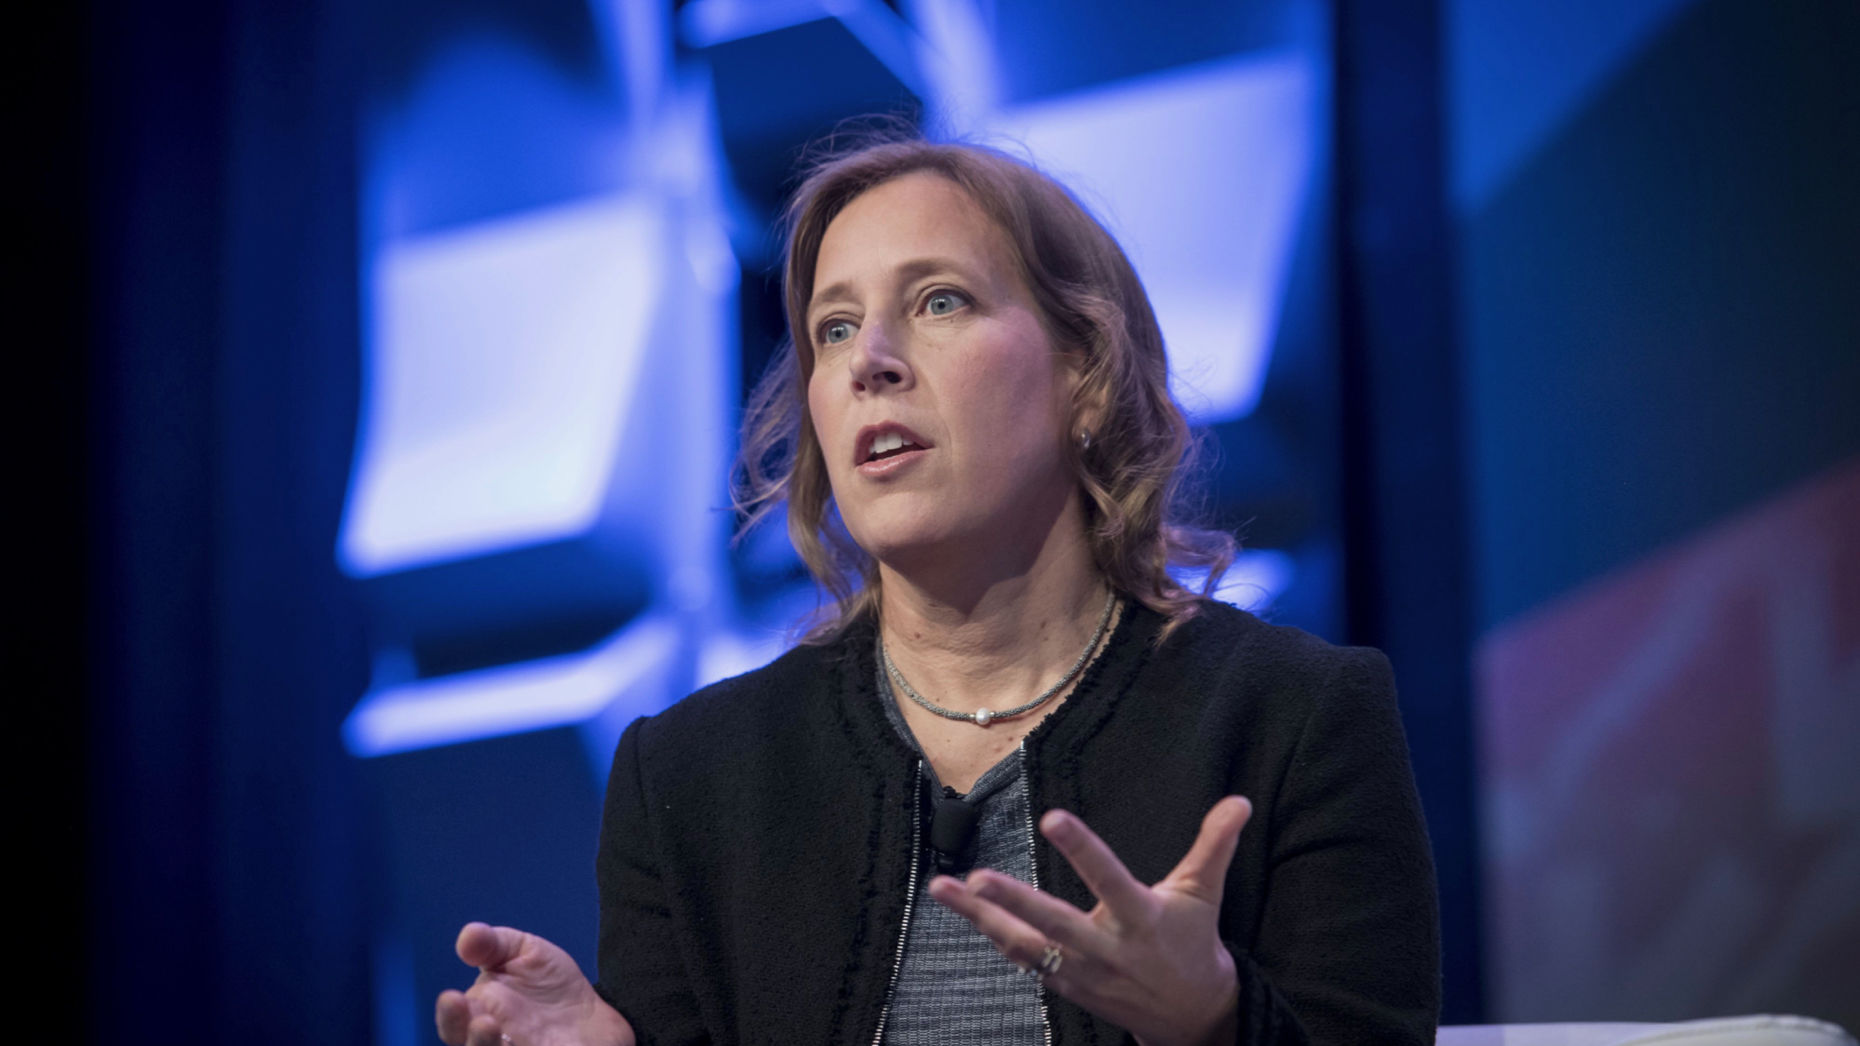 YouTube CEO Susan Wojcicki. Photo by Bloomberg